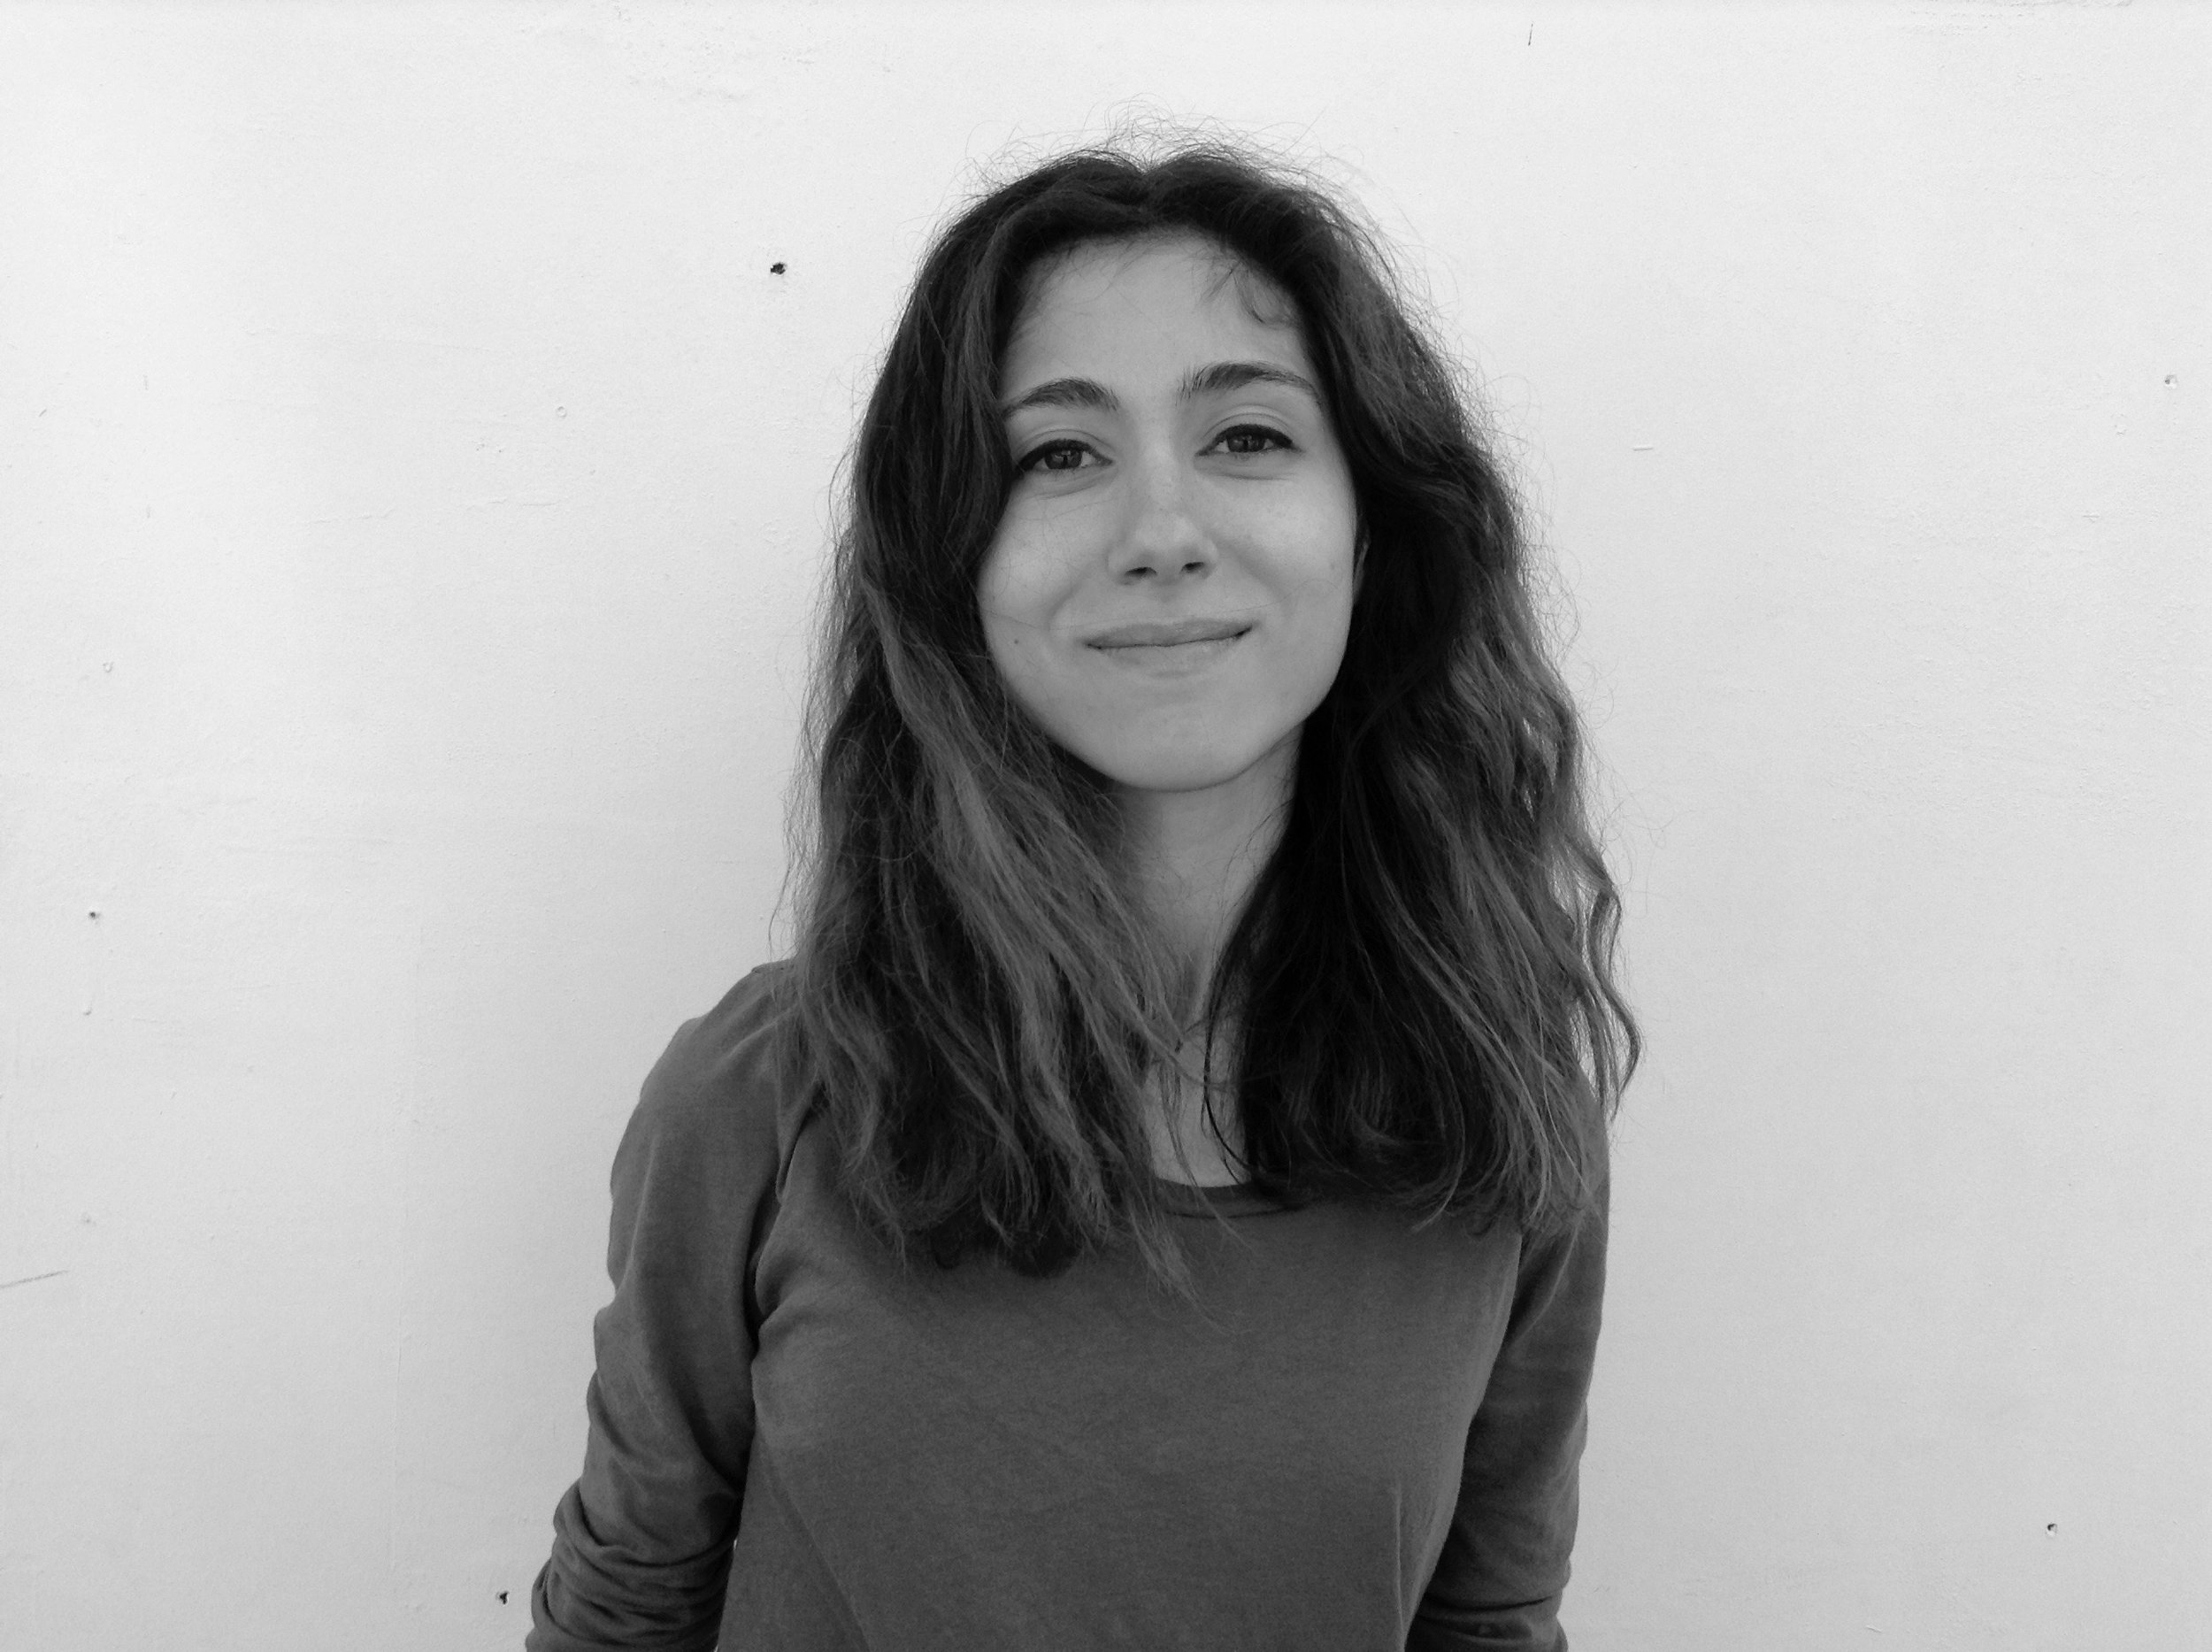 Miha   A qualified psychologist with many years experience working for us as an executive nanny. Miha is an extremely kind, gentle and conscientious person.